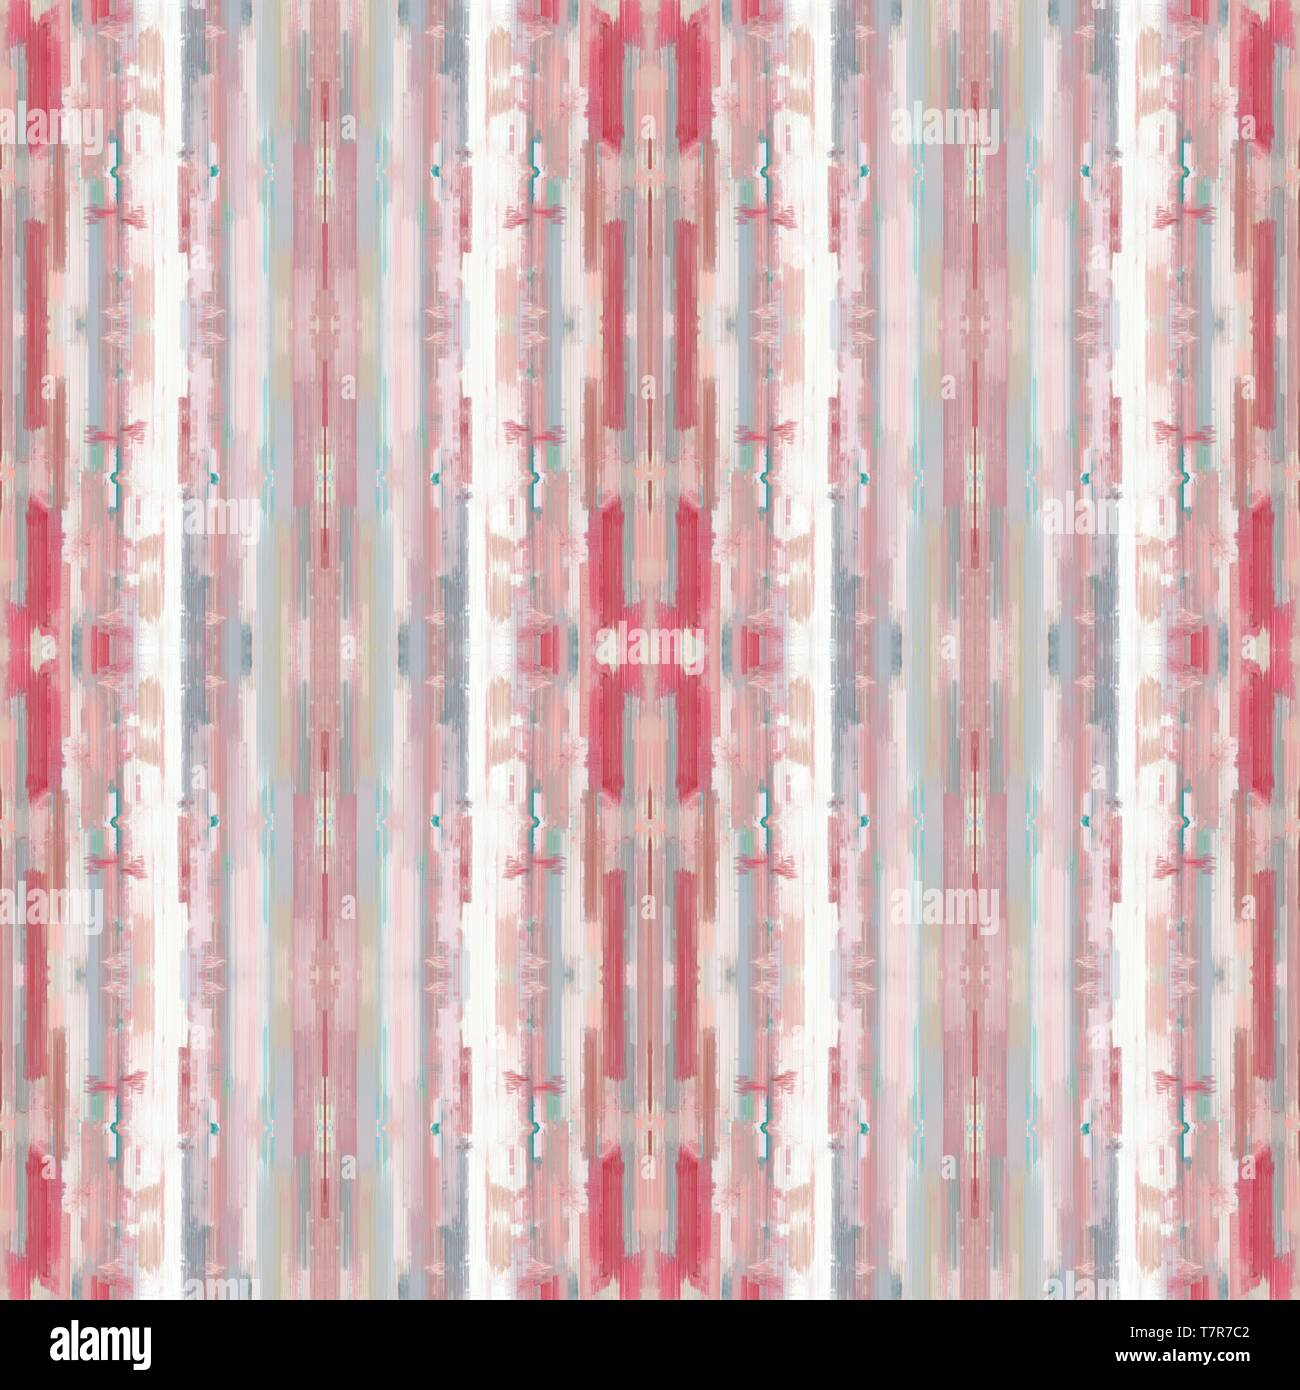 Abstract Painted Weathered Material With Pastel Gray Silver And